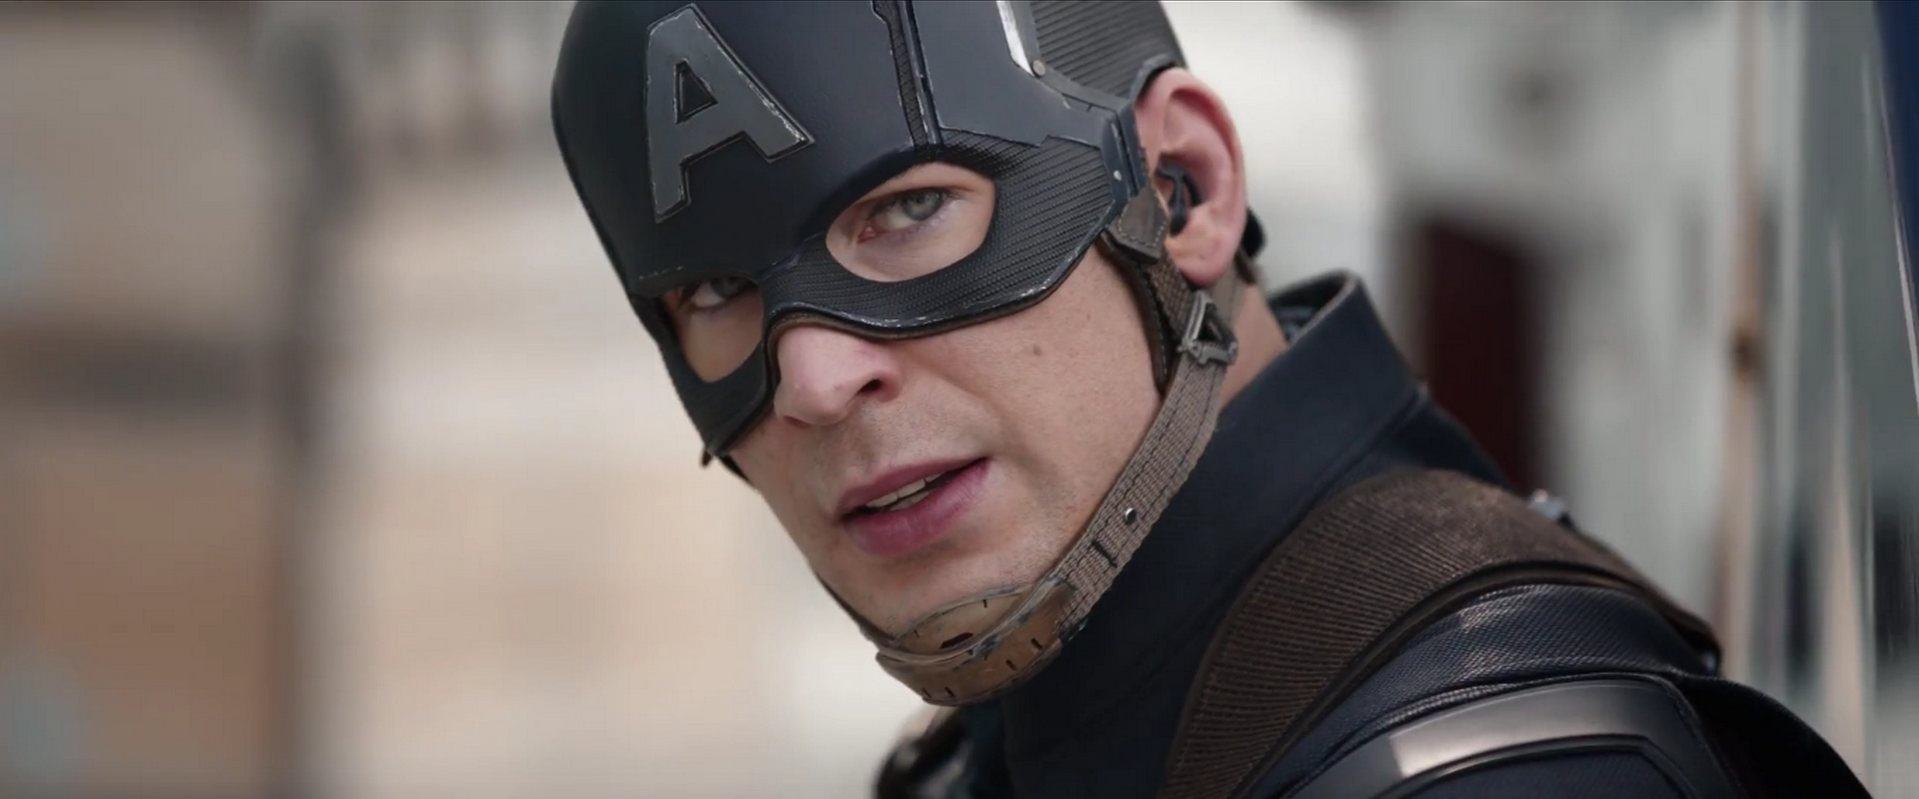 Avengers: Endgame writers confirm a major Captain America fan theory